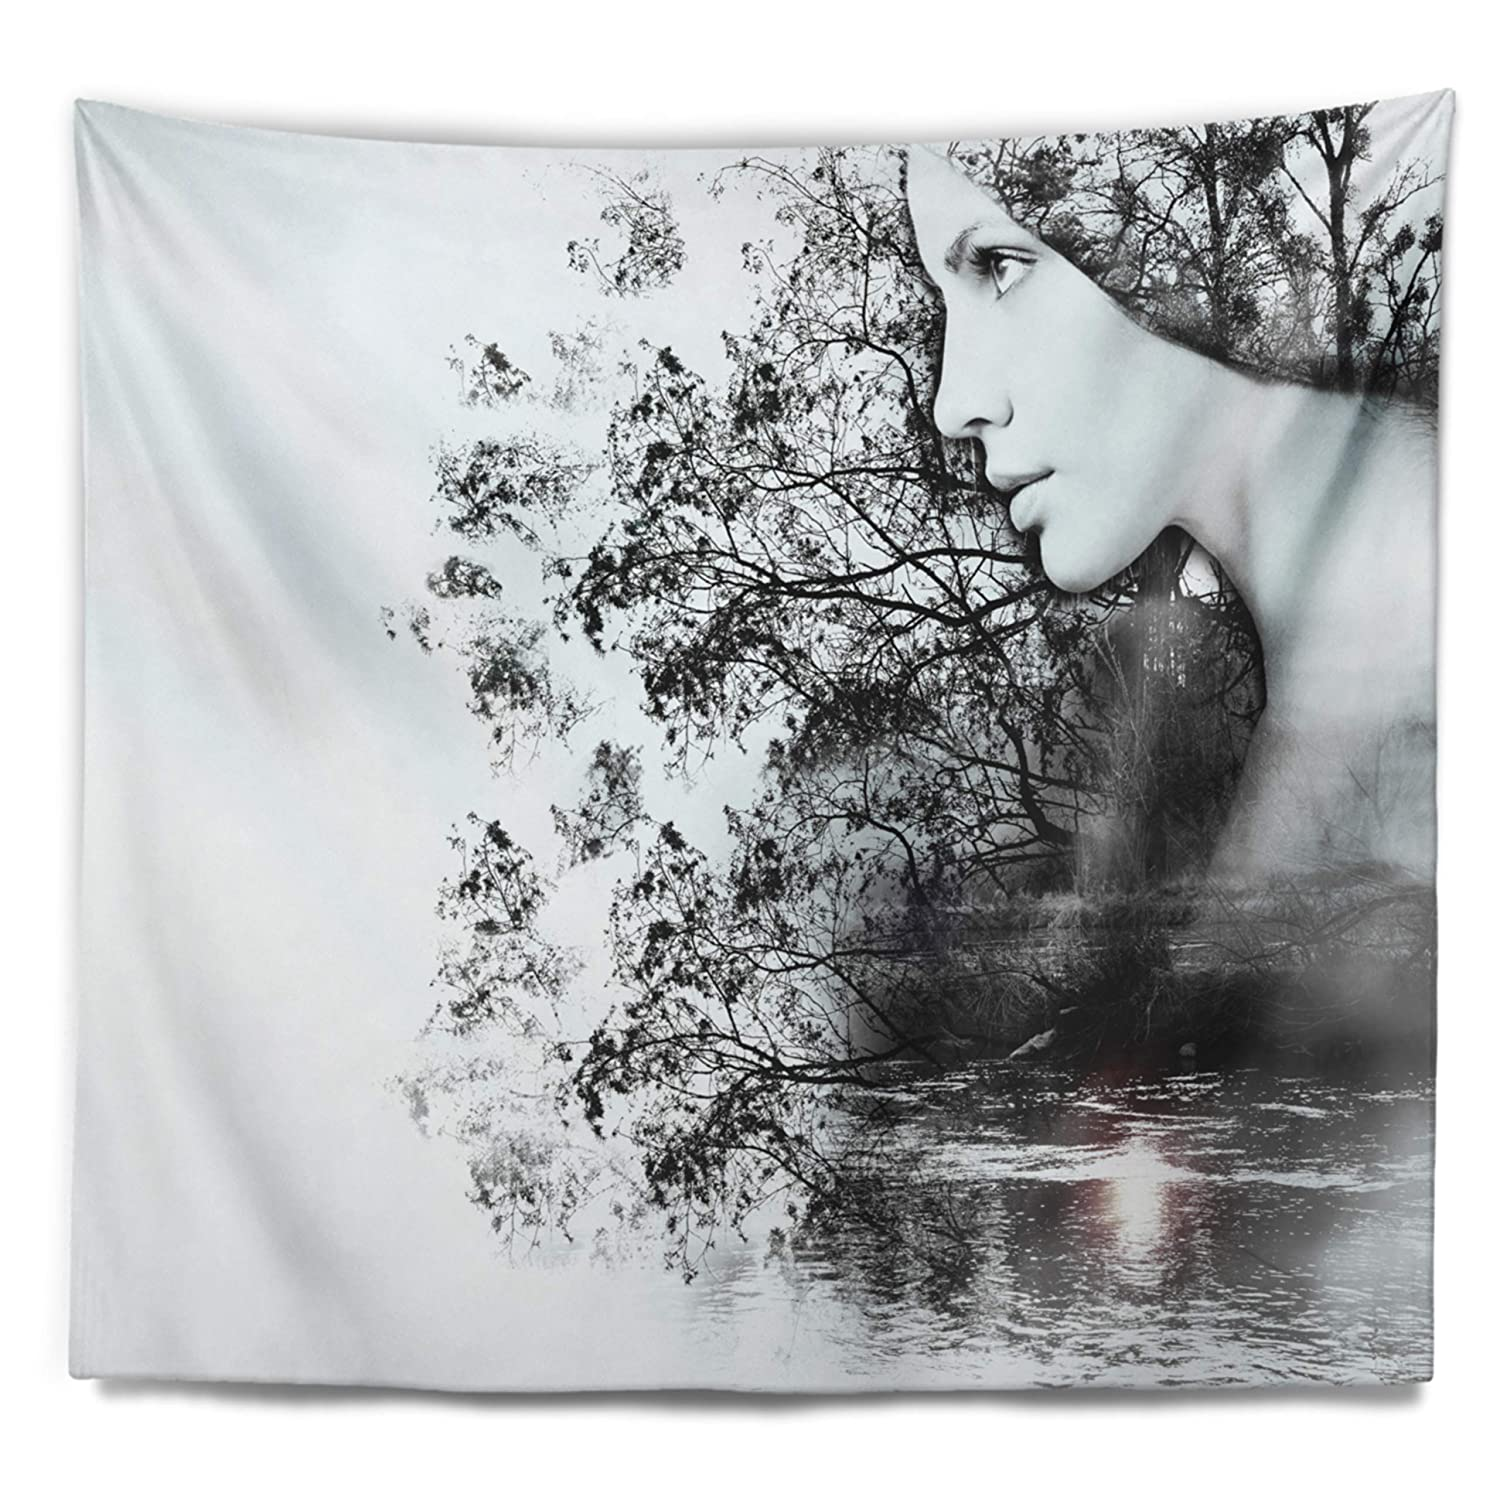 Created On Lightweight Polyester Fabric Designart TAP14316-80-68  Woman and Beauty of Nature Landscape Blanket D/écor Art for Home and Office Wall Tapestry x Large 80 in x 68 in